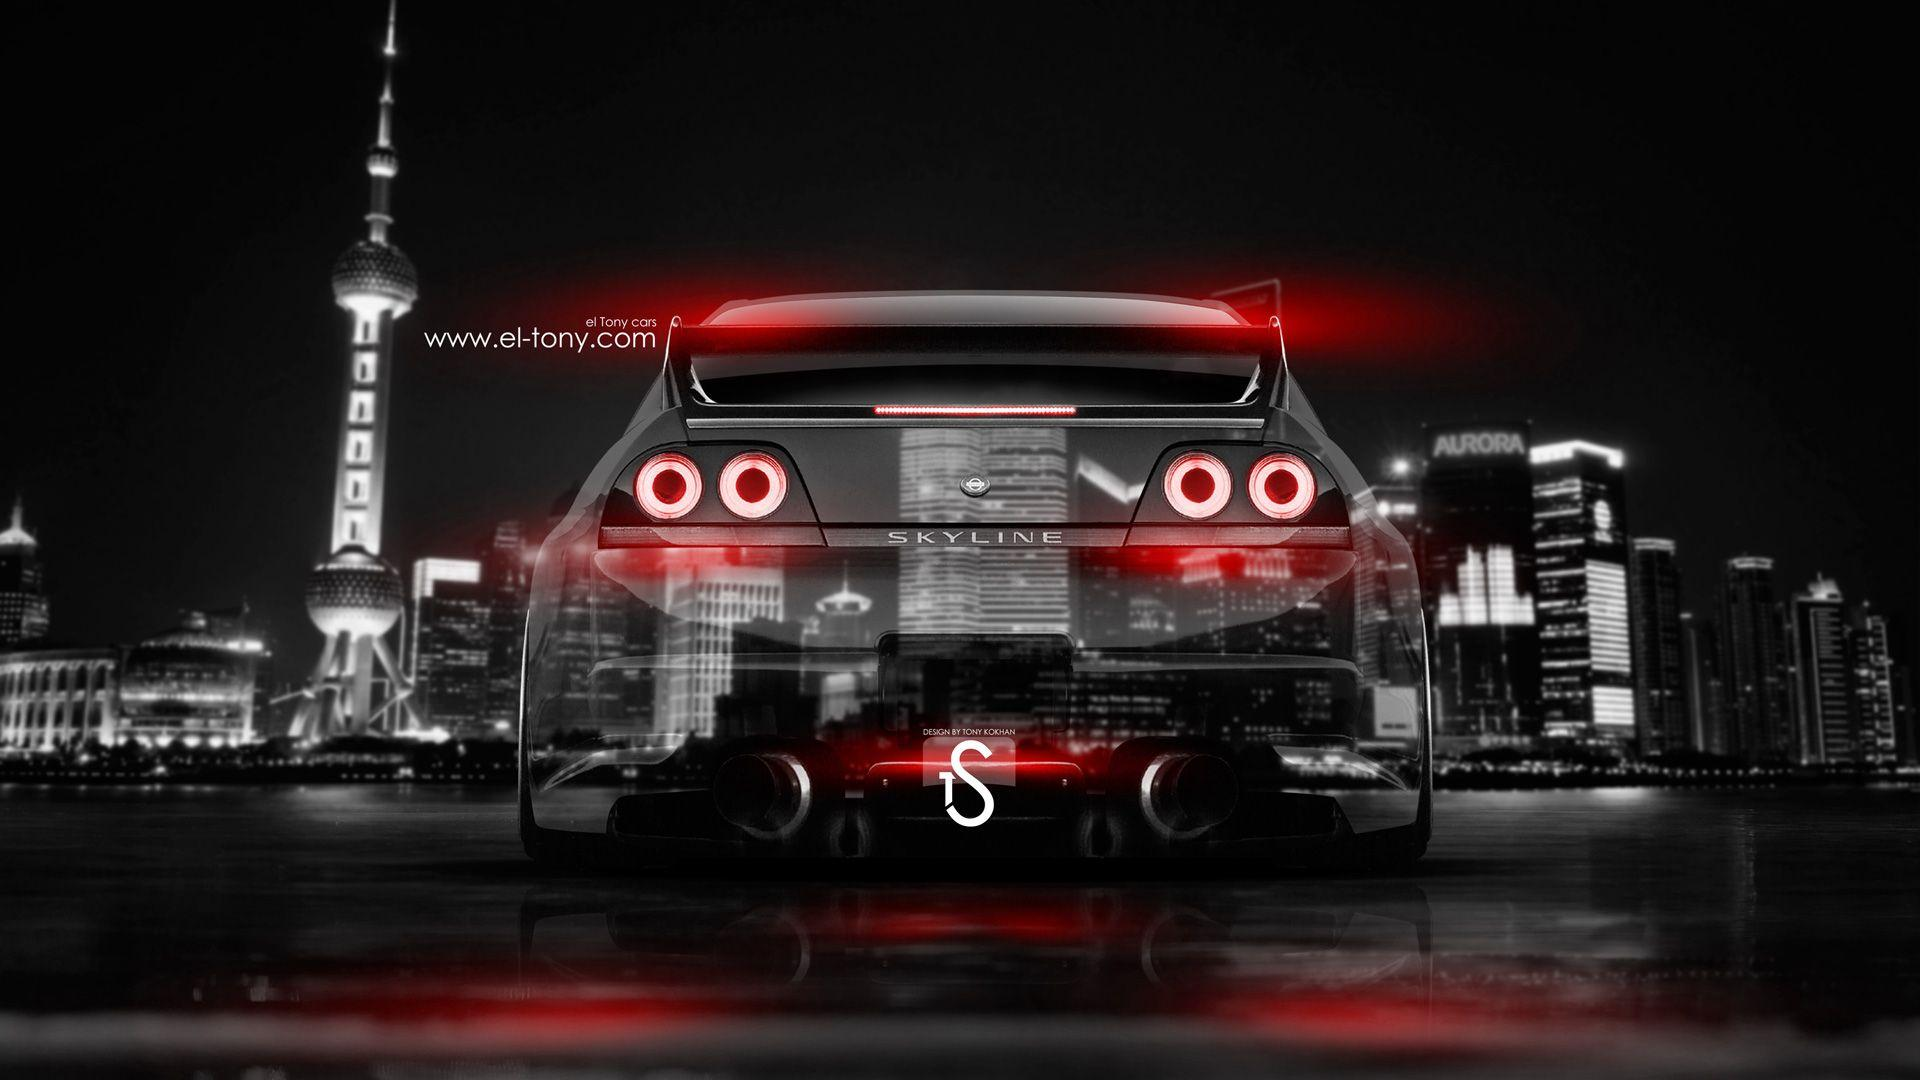 Superior Nissan Skyline GTR R33 JDM Back Crystal City Car 2014 | El Tony